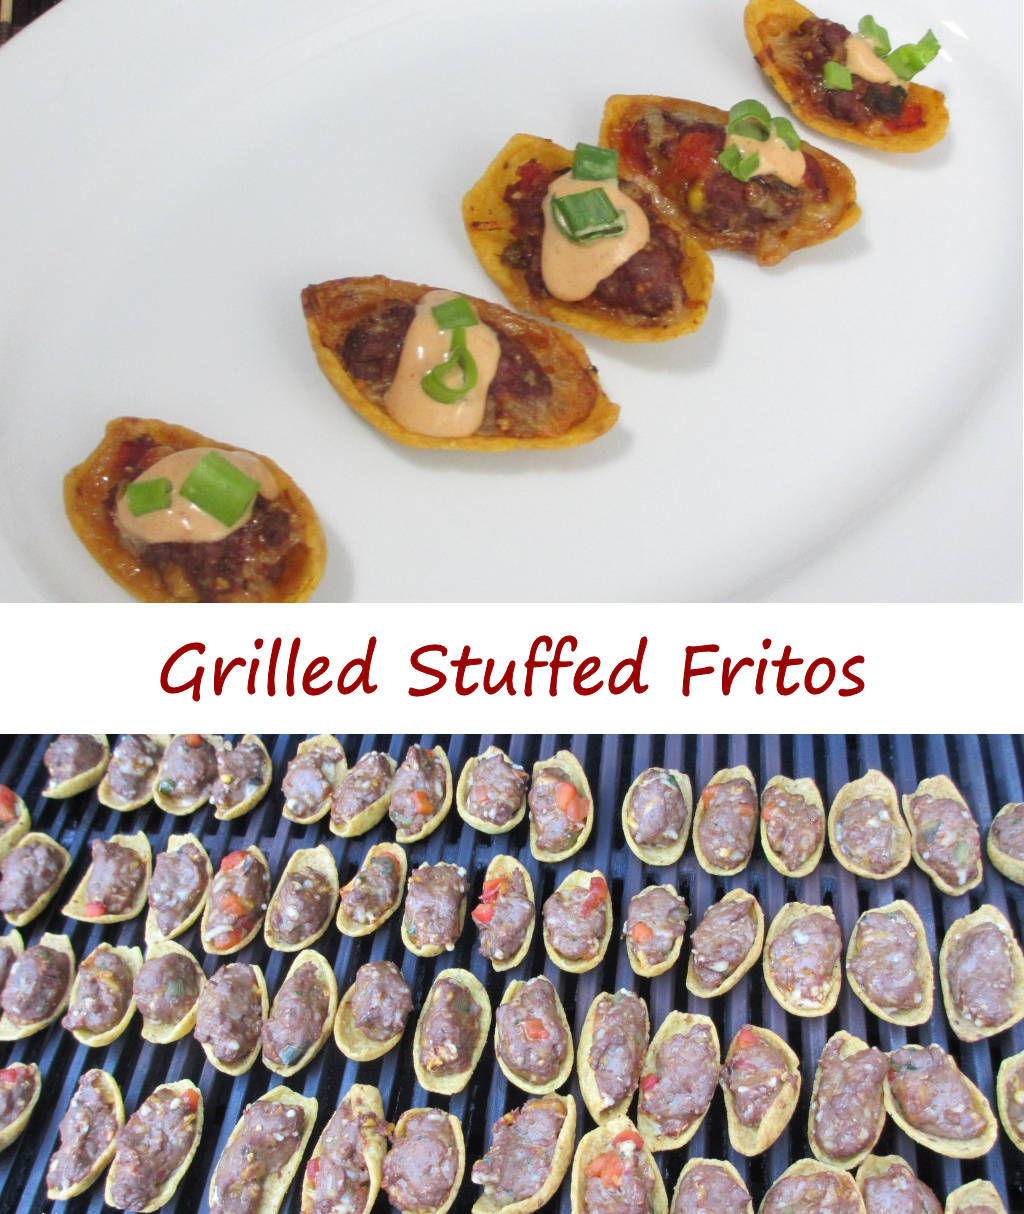 Grilled Stuffed Fritos with Southwestern Sauce